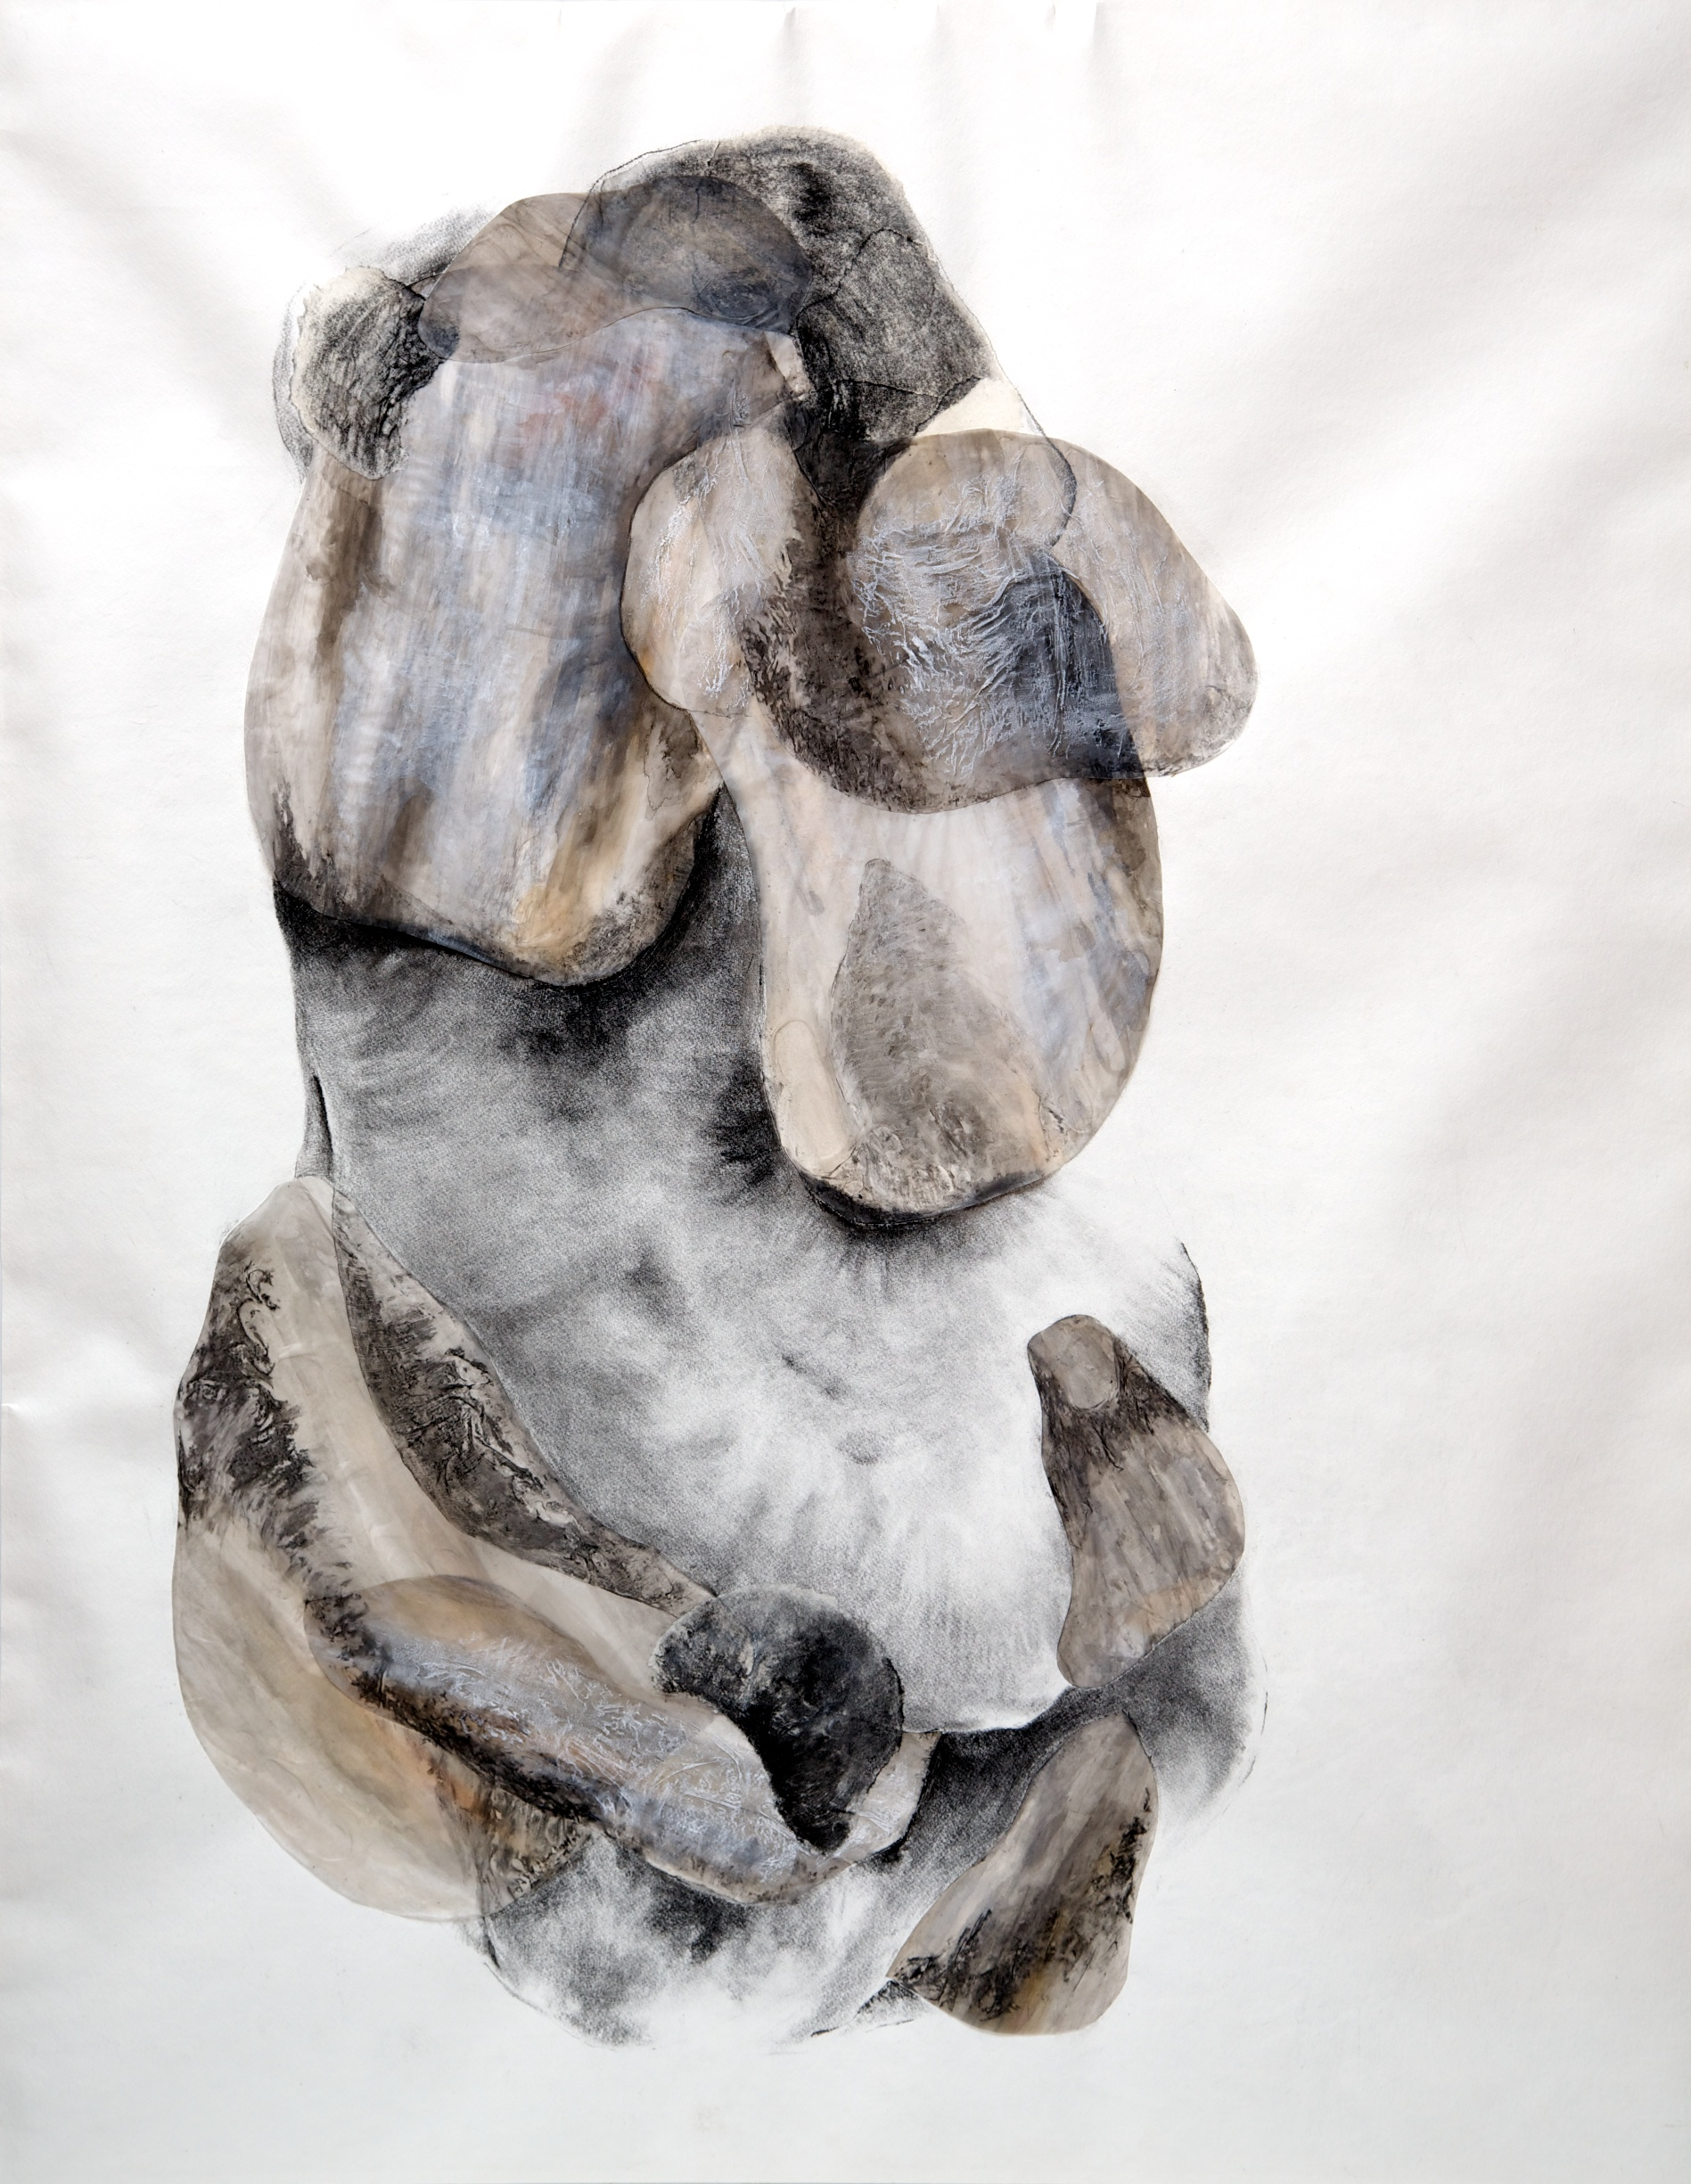 Voracious embrace I  Charcoal, ink and watercolor on paper. 127 x 100cm. 2012